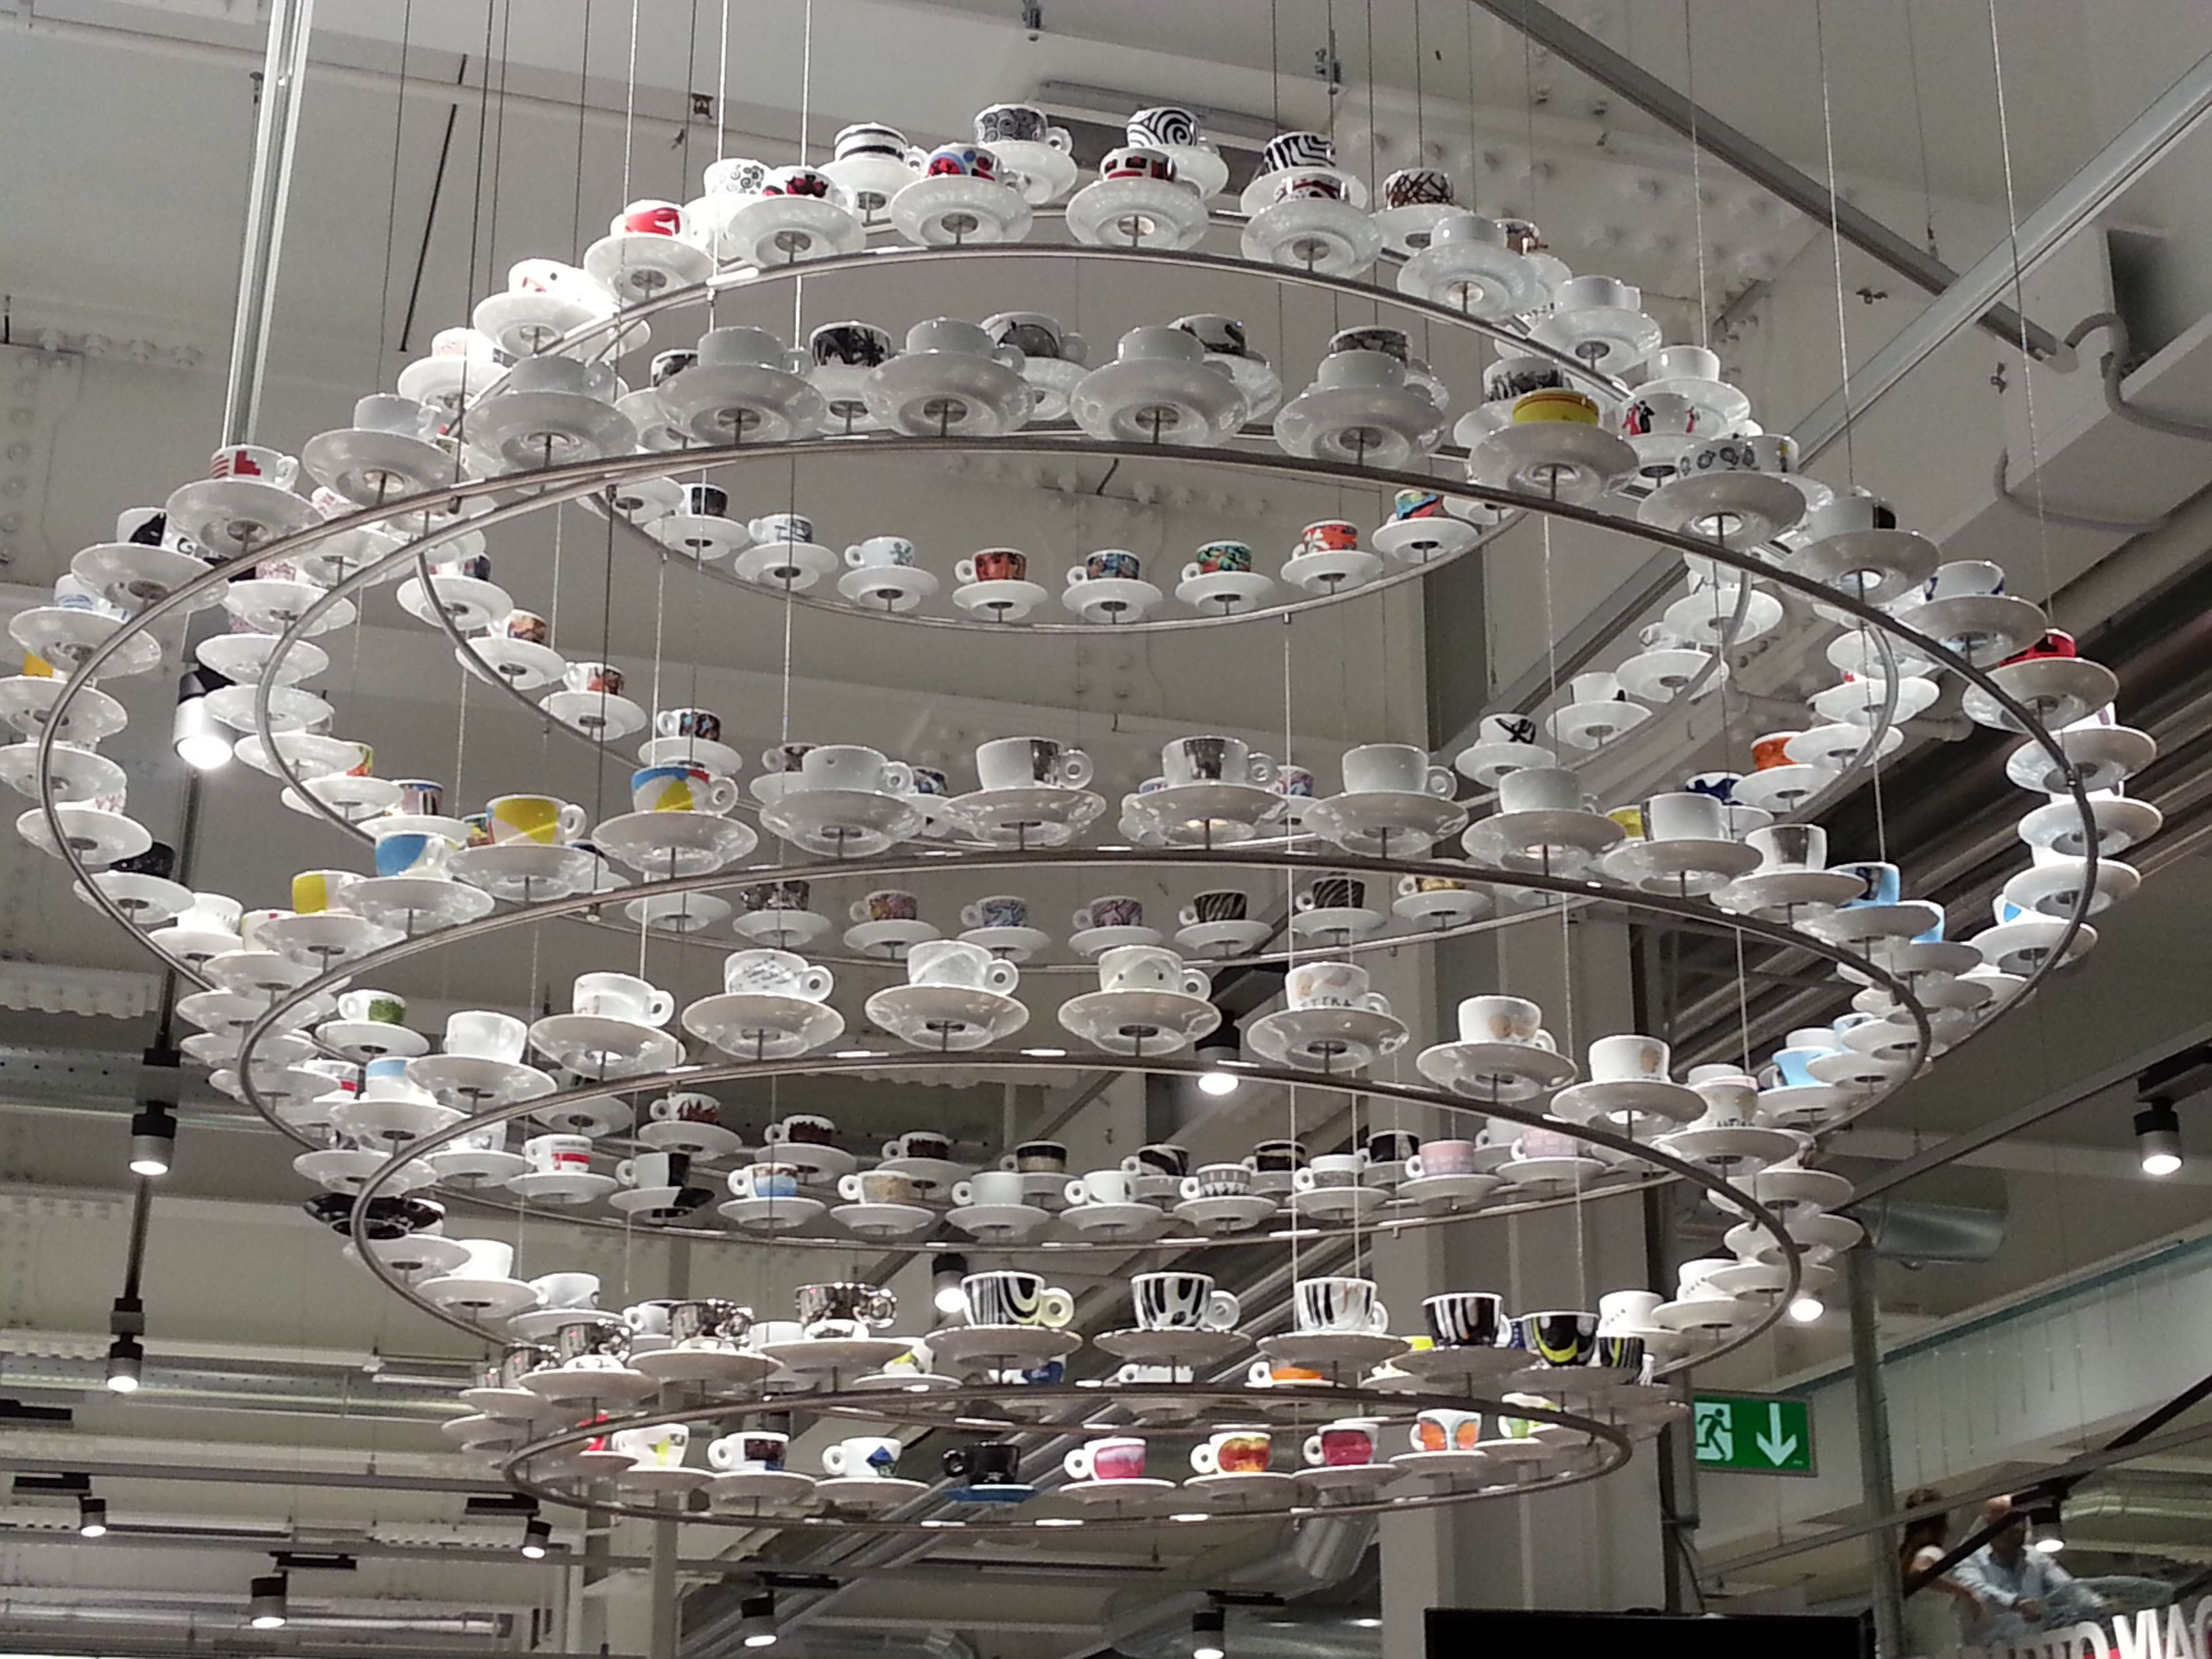 Illy cups chandelier from eataly store rome inspiring illy cups chandelier from eataly store rome arubaitofo Choice Image